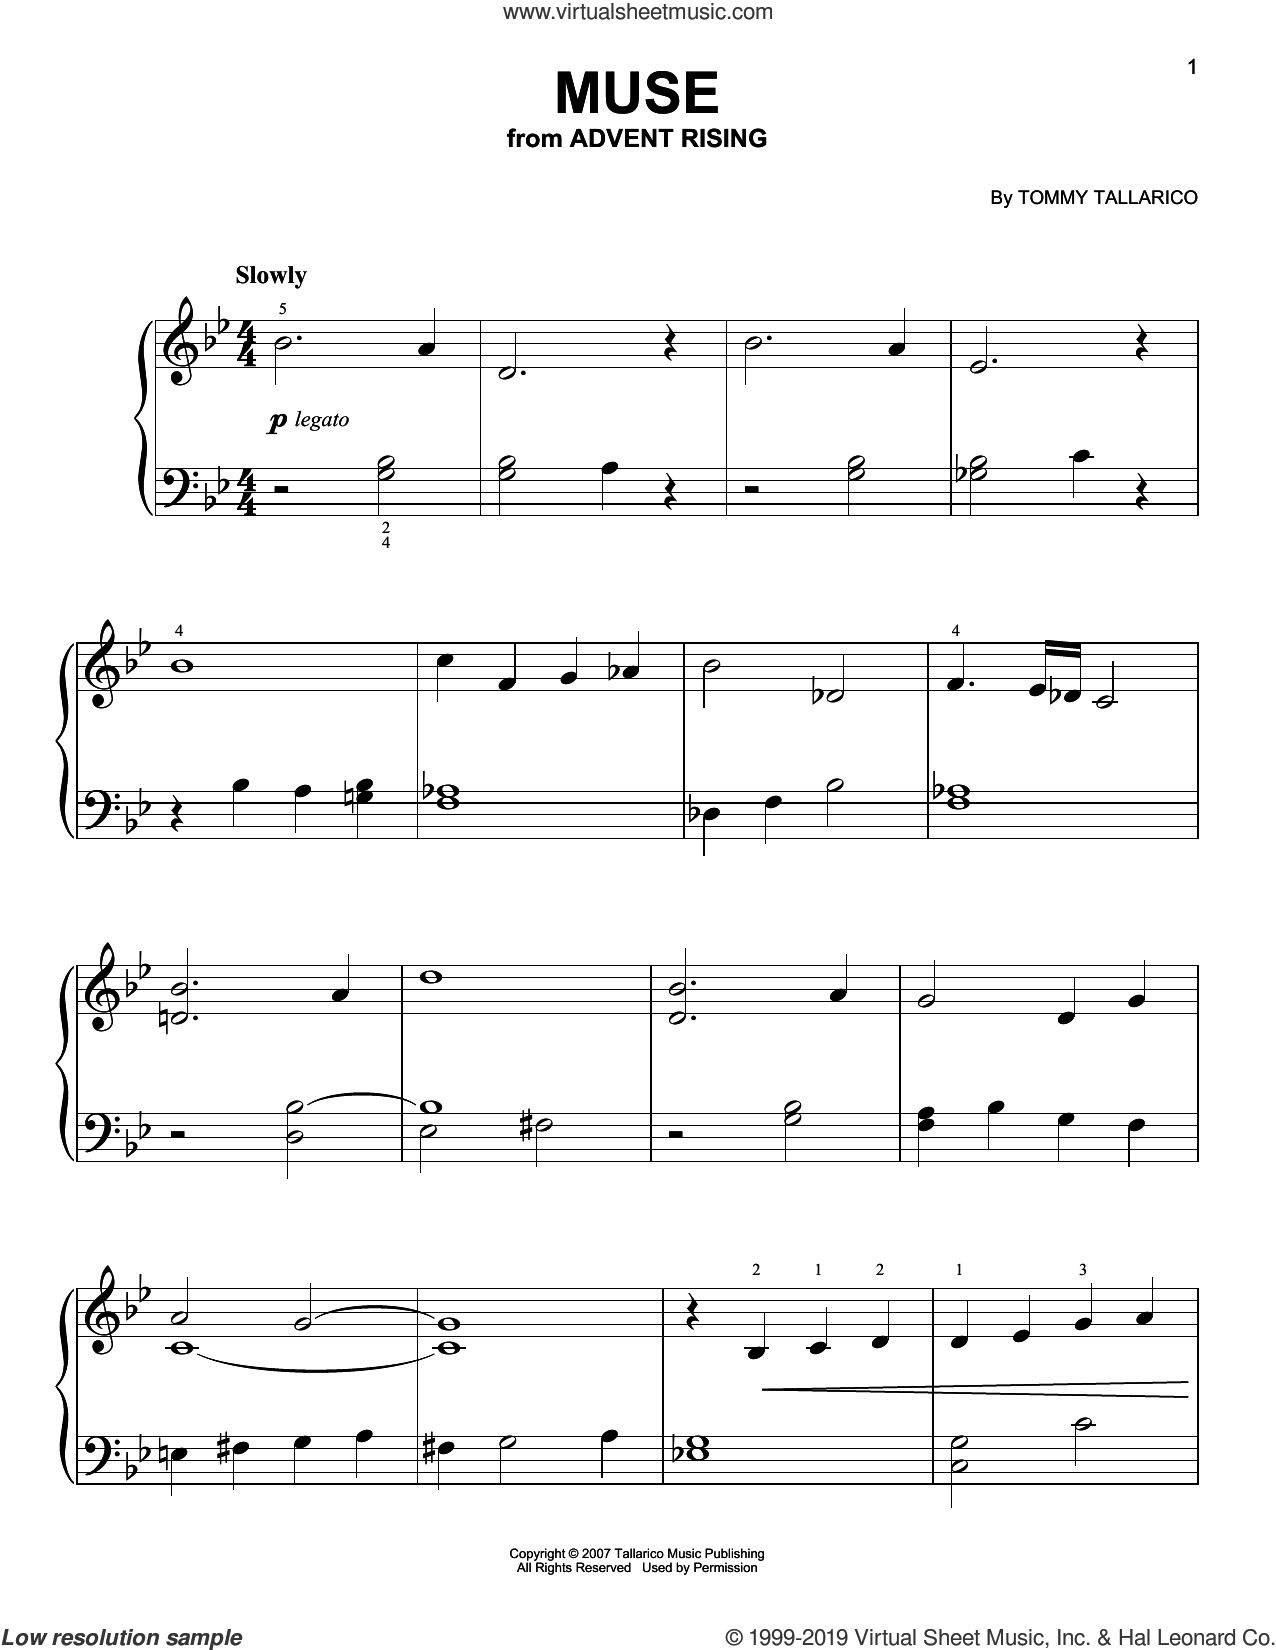 Muse (from Advent Rising) sheet music for piano solo by Tommy Tallarico, easy skill level